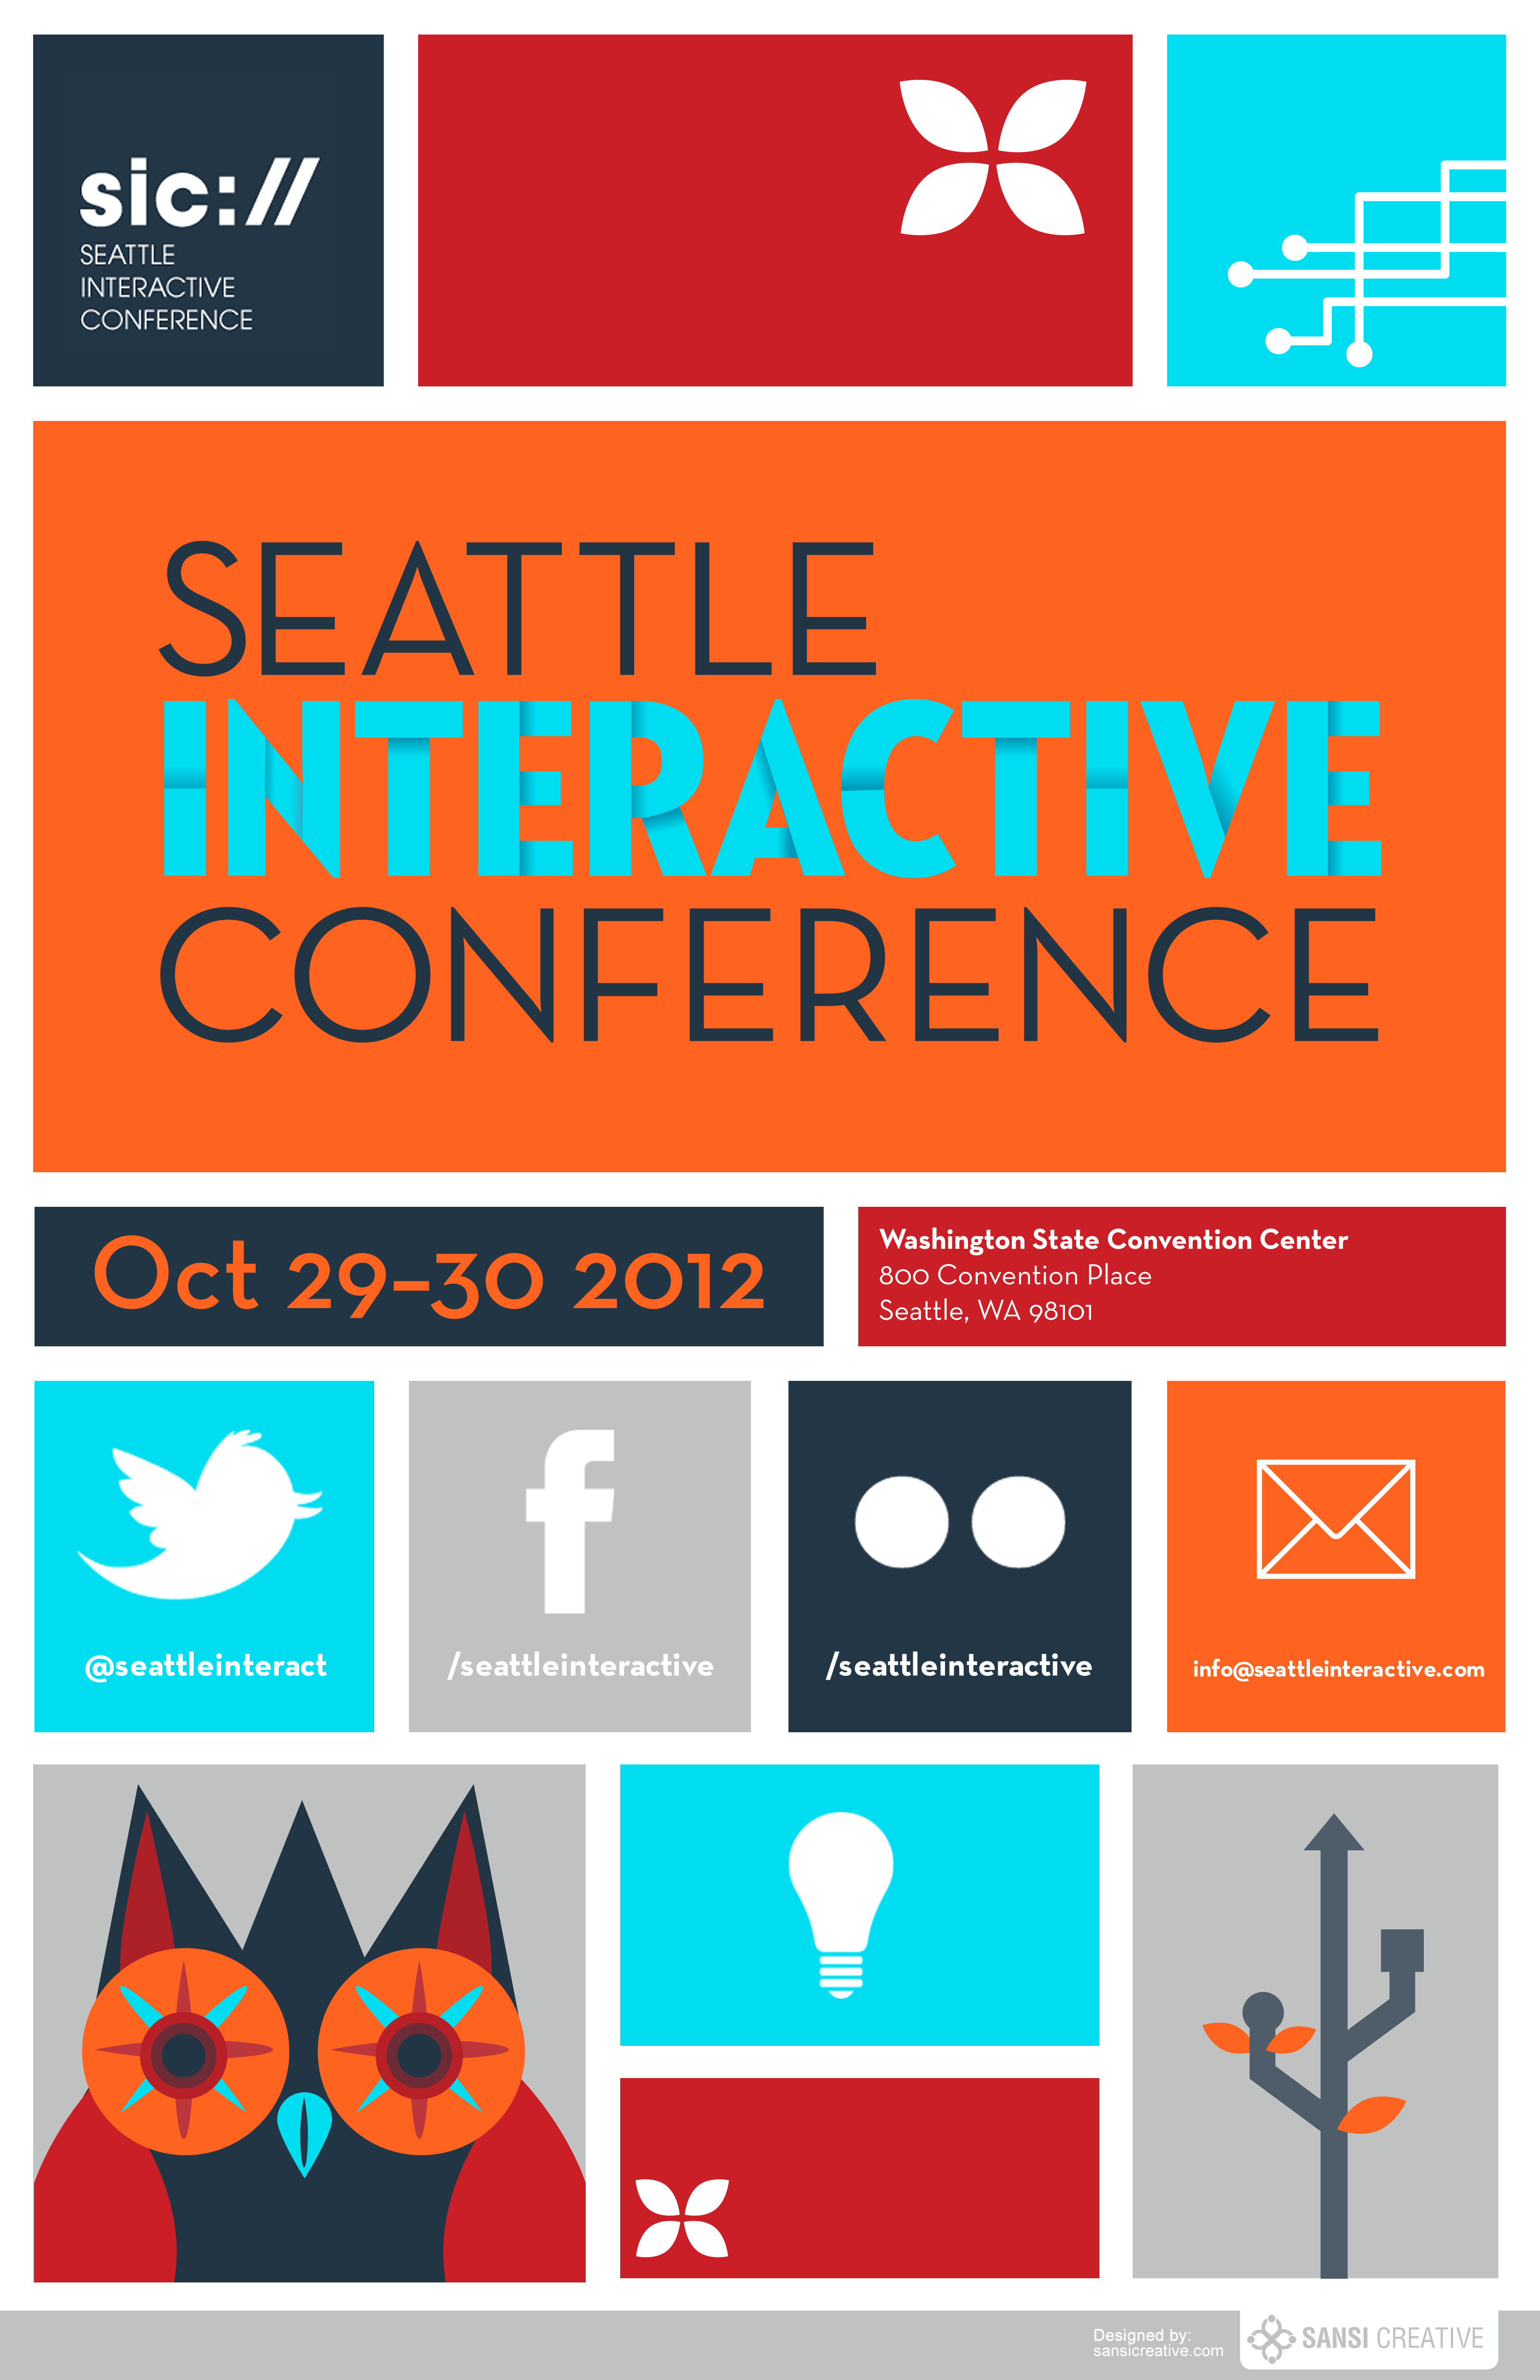 Design poster 70x100 - Creative Posters Seattle Interactive Conference 2012 Poster Contest 2 Sansi